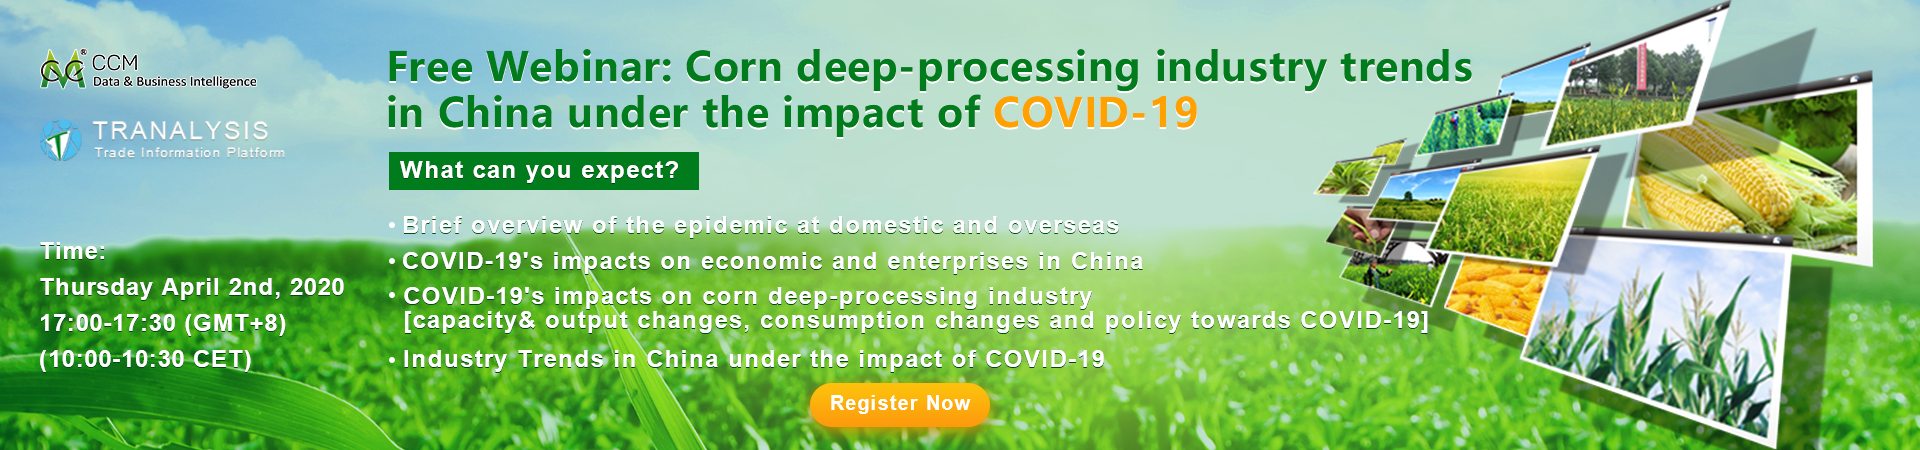 Experts' review on the corn industry in China under the impact of COVID_19